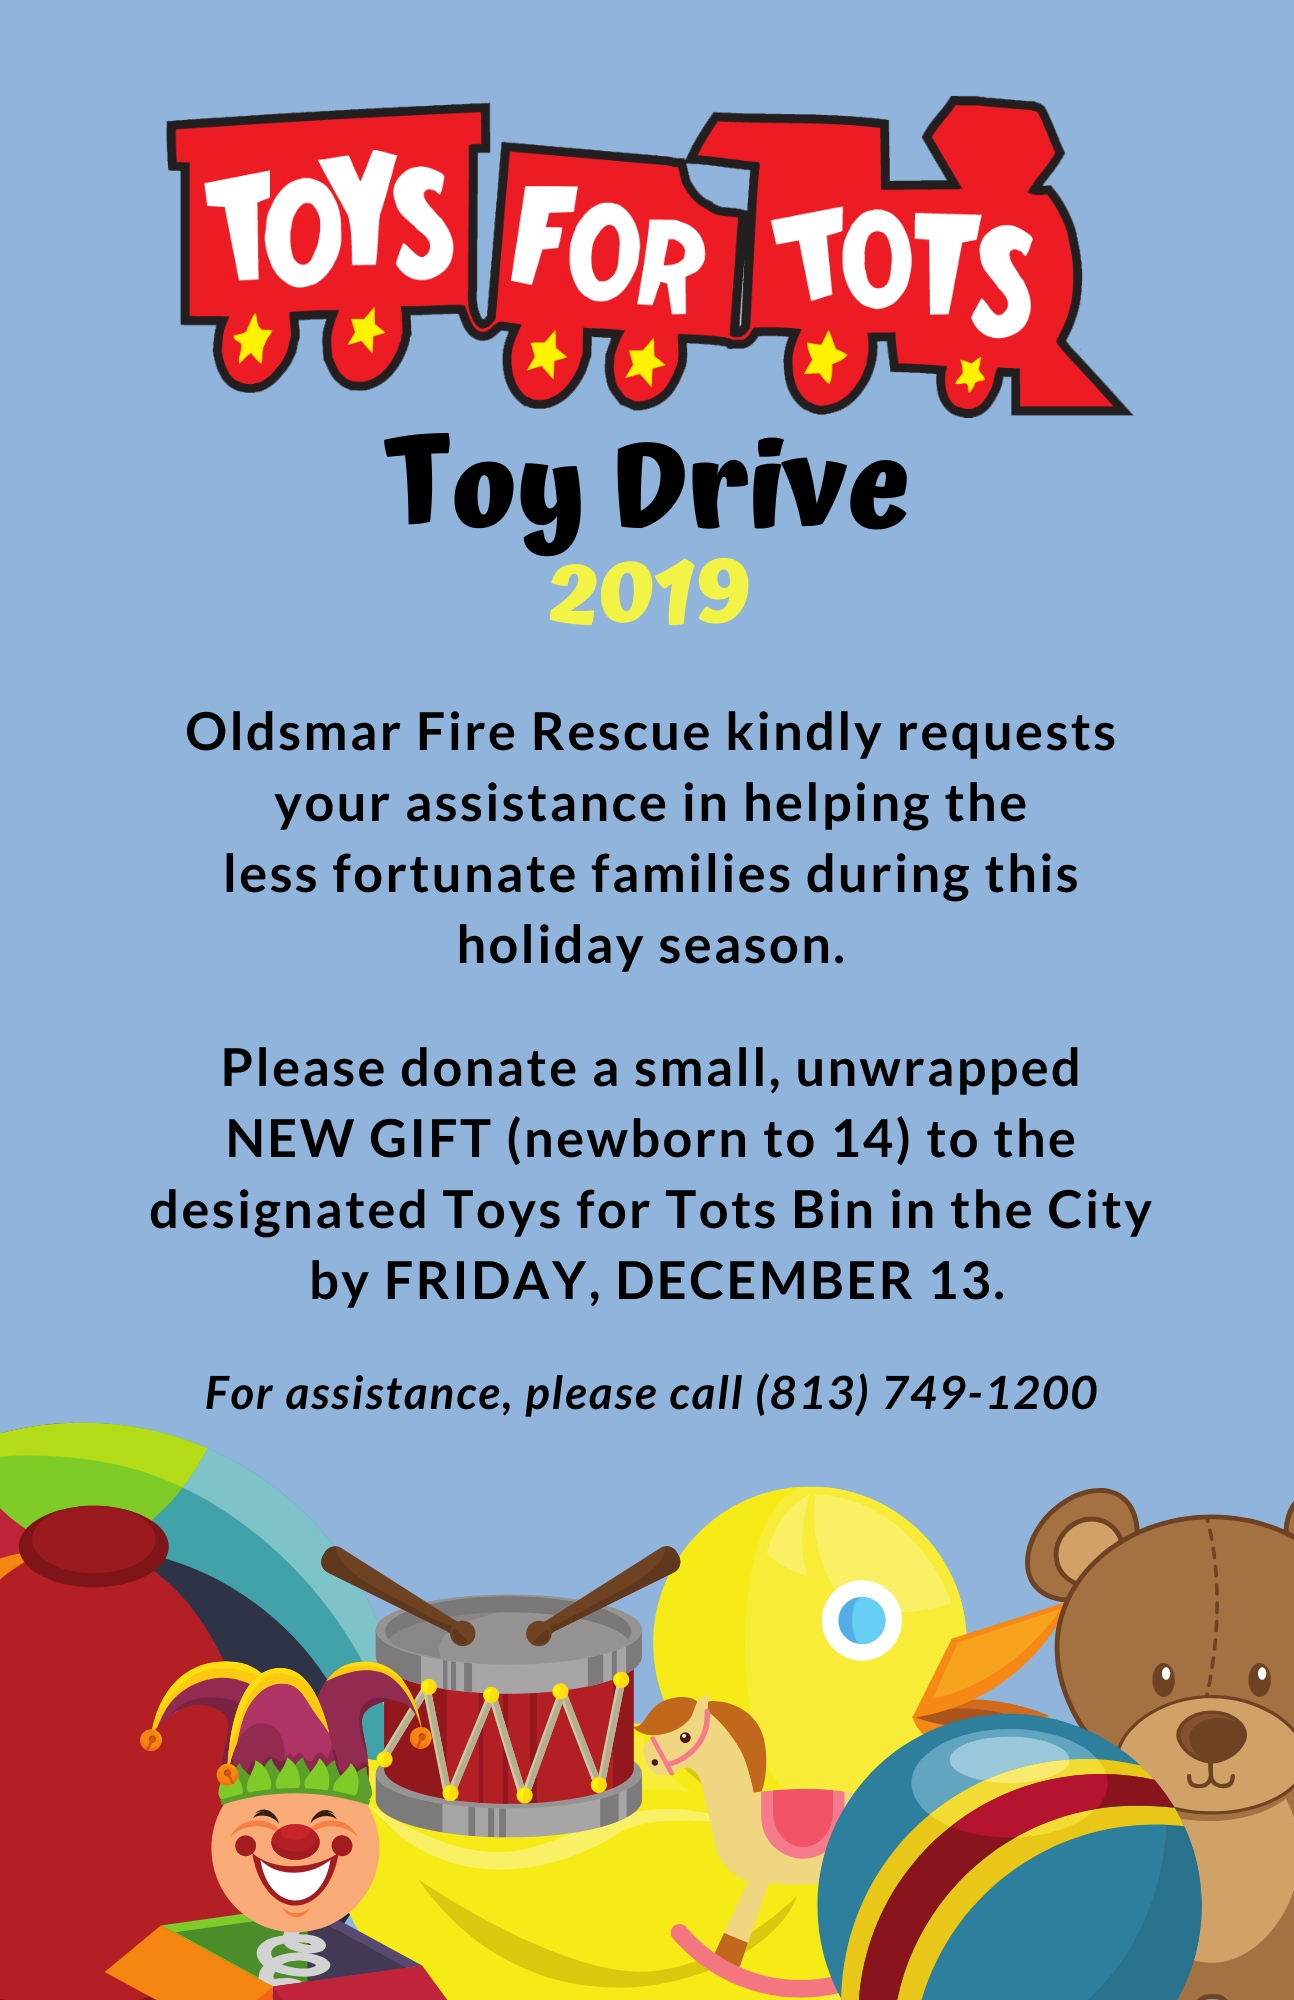 Toys for Tots Toy Drive 2019.  Oldsmar Fire Rescue kindly requests your assistance in helping the le